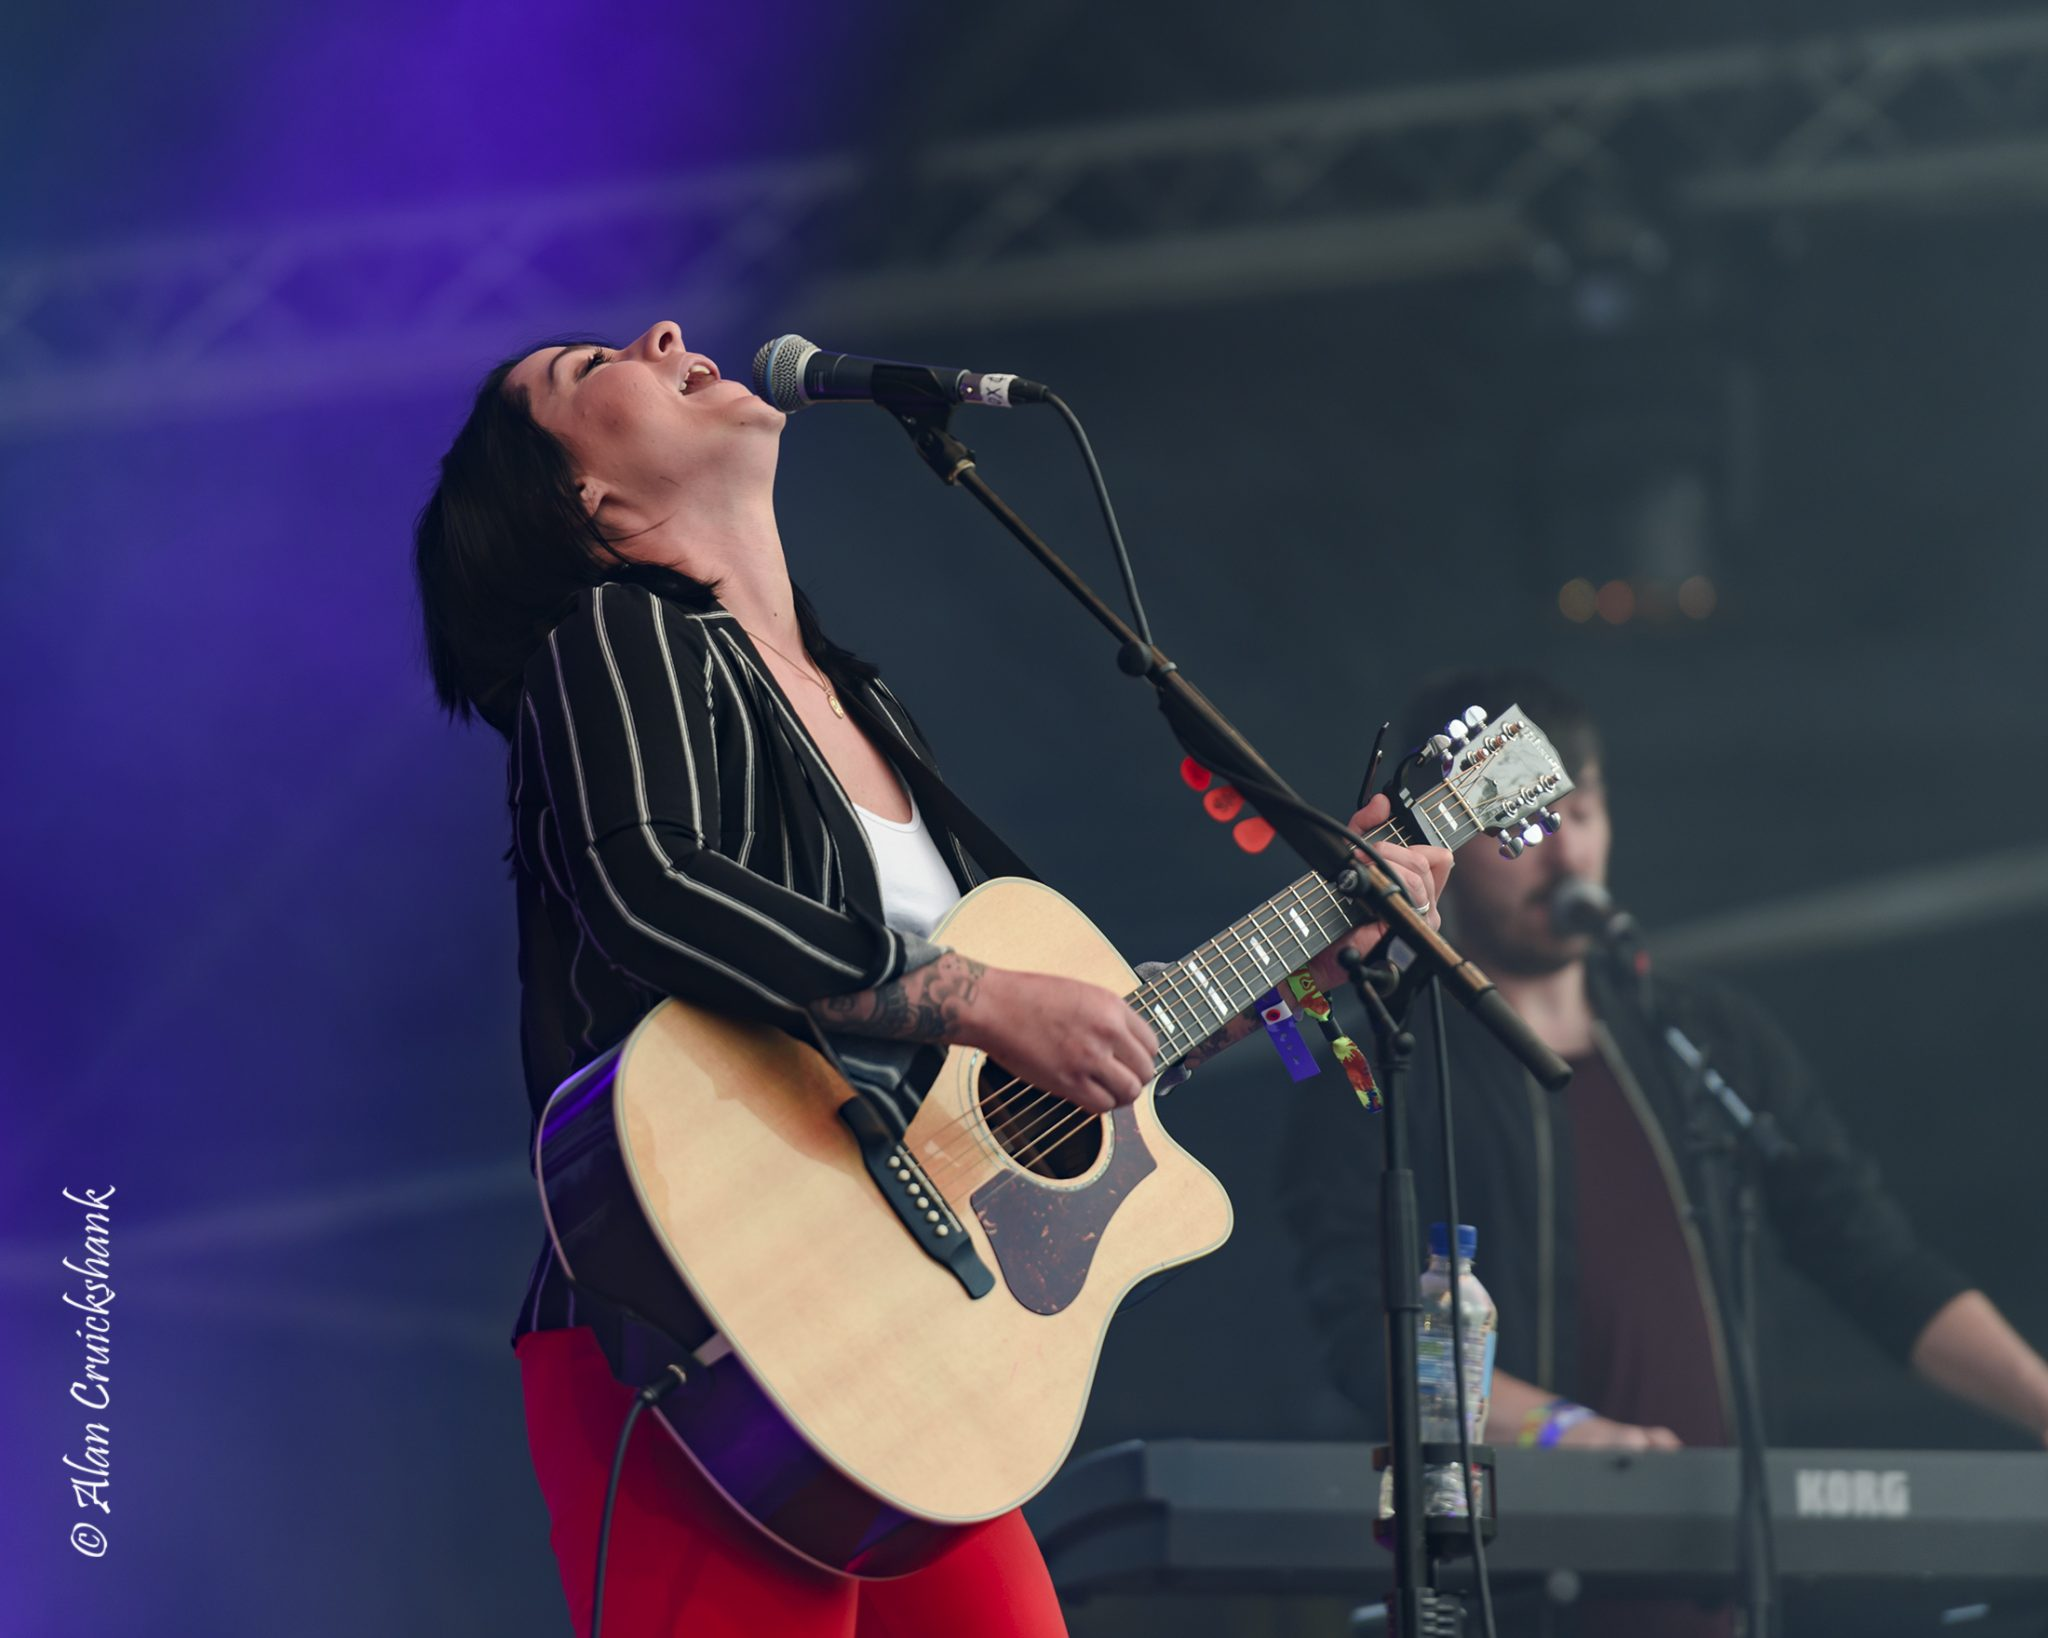 ZX5QZ - Lucy Spraggan Friday Belladrum 2018 - IMAGES